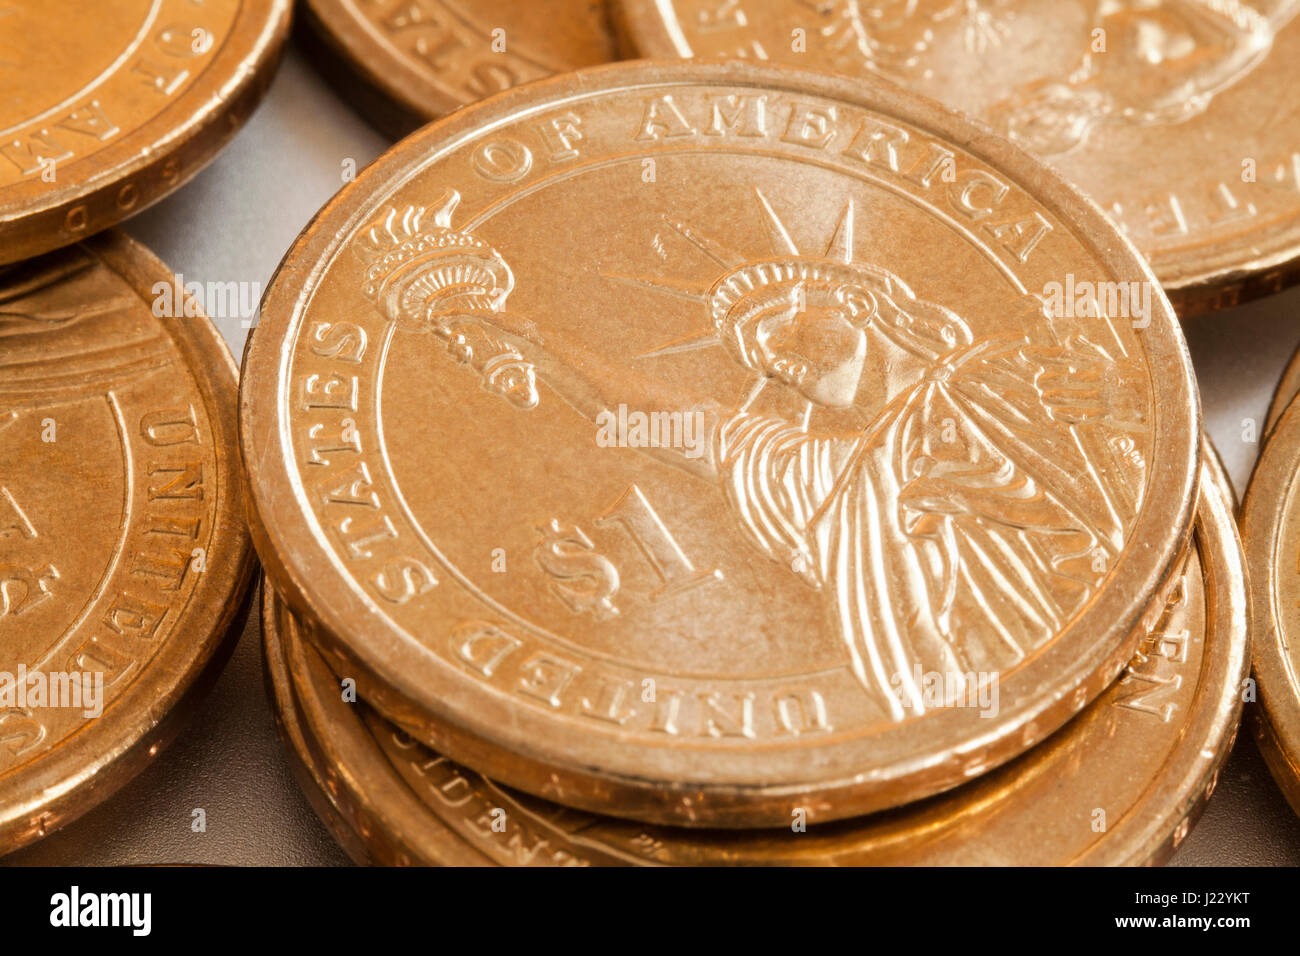 Presidential 1 dollar coin (US $1 coins reverse view) - USA - Stock Image